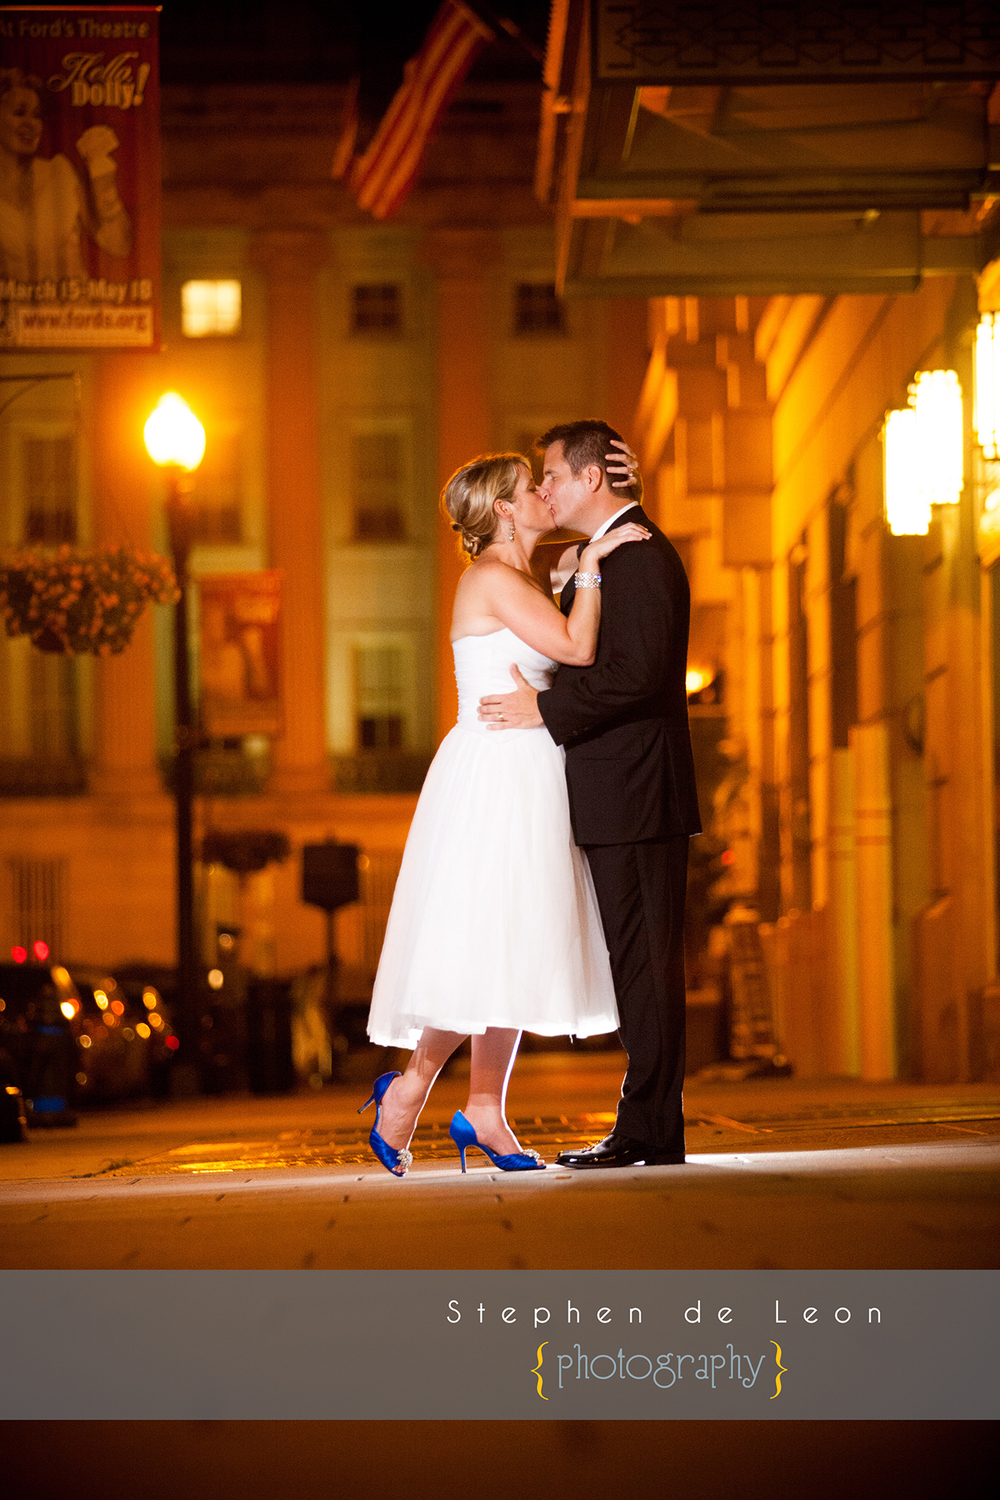 Stephen_de_Leon_Capitol_Wedding_Photography_59.jpg